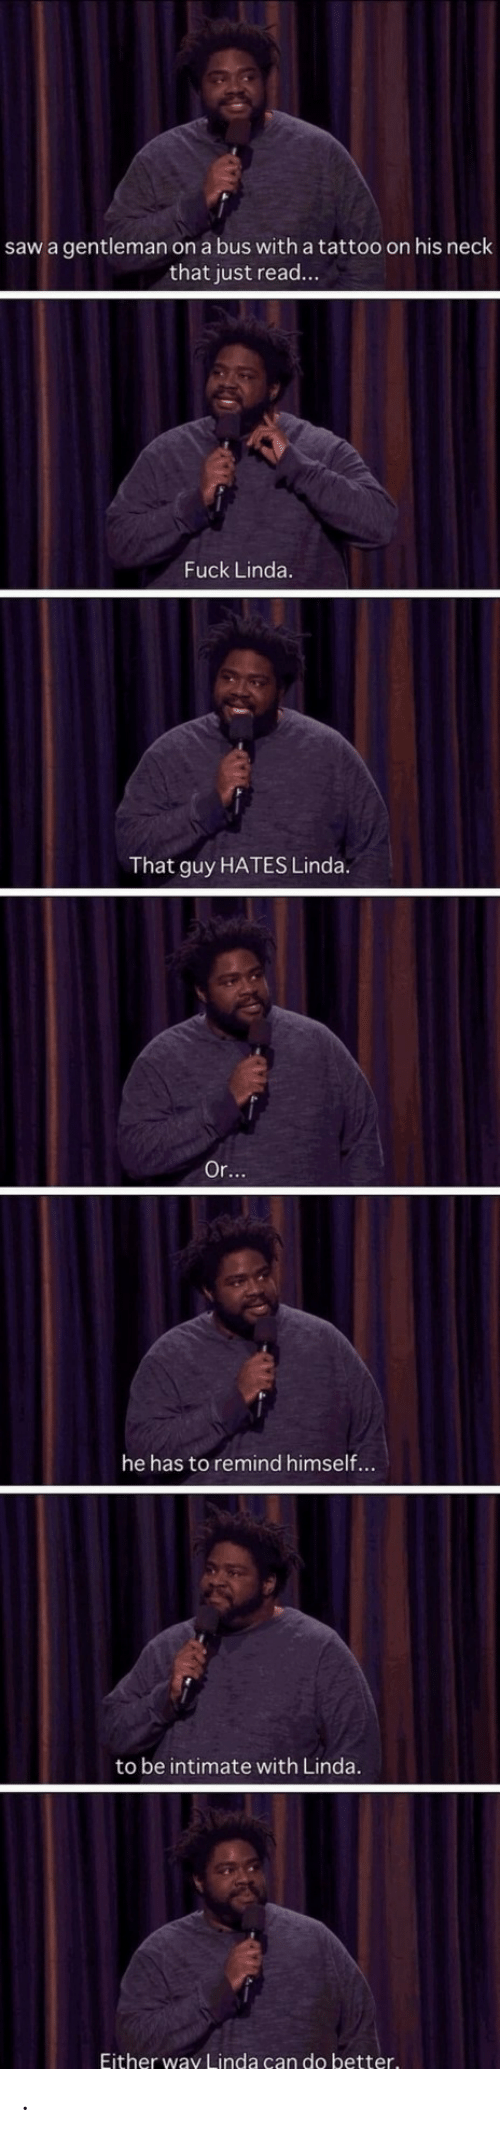 Saw, Fuck, and Tattoo: saw a gentleman on a bus with a tattoo on his neck  that just read...  Fuck Linda.  That guy HATES Linda.  Or...  he has to remind himself...  to be intimate with Linda.  Either way Linda can do better. .